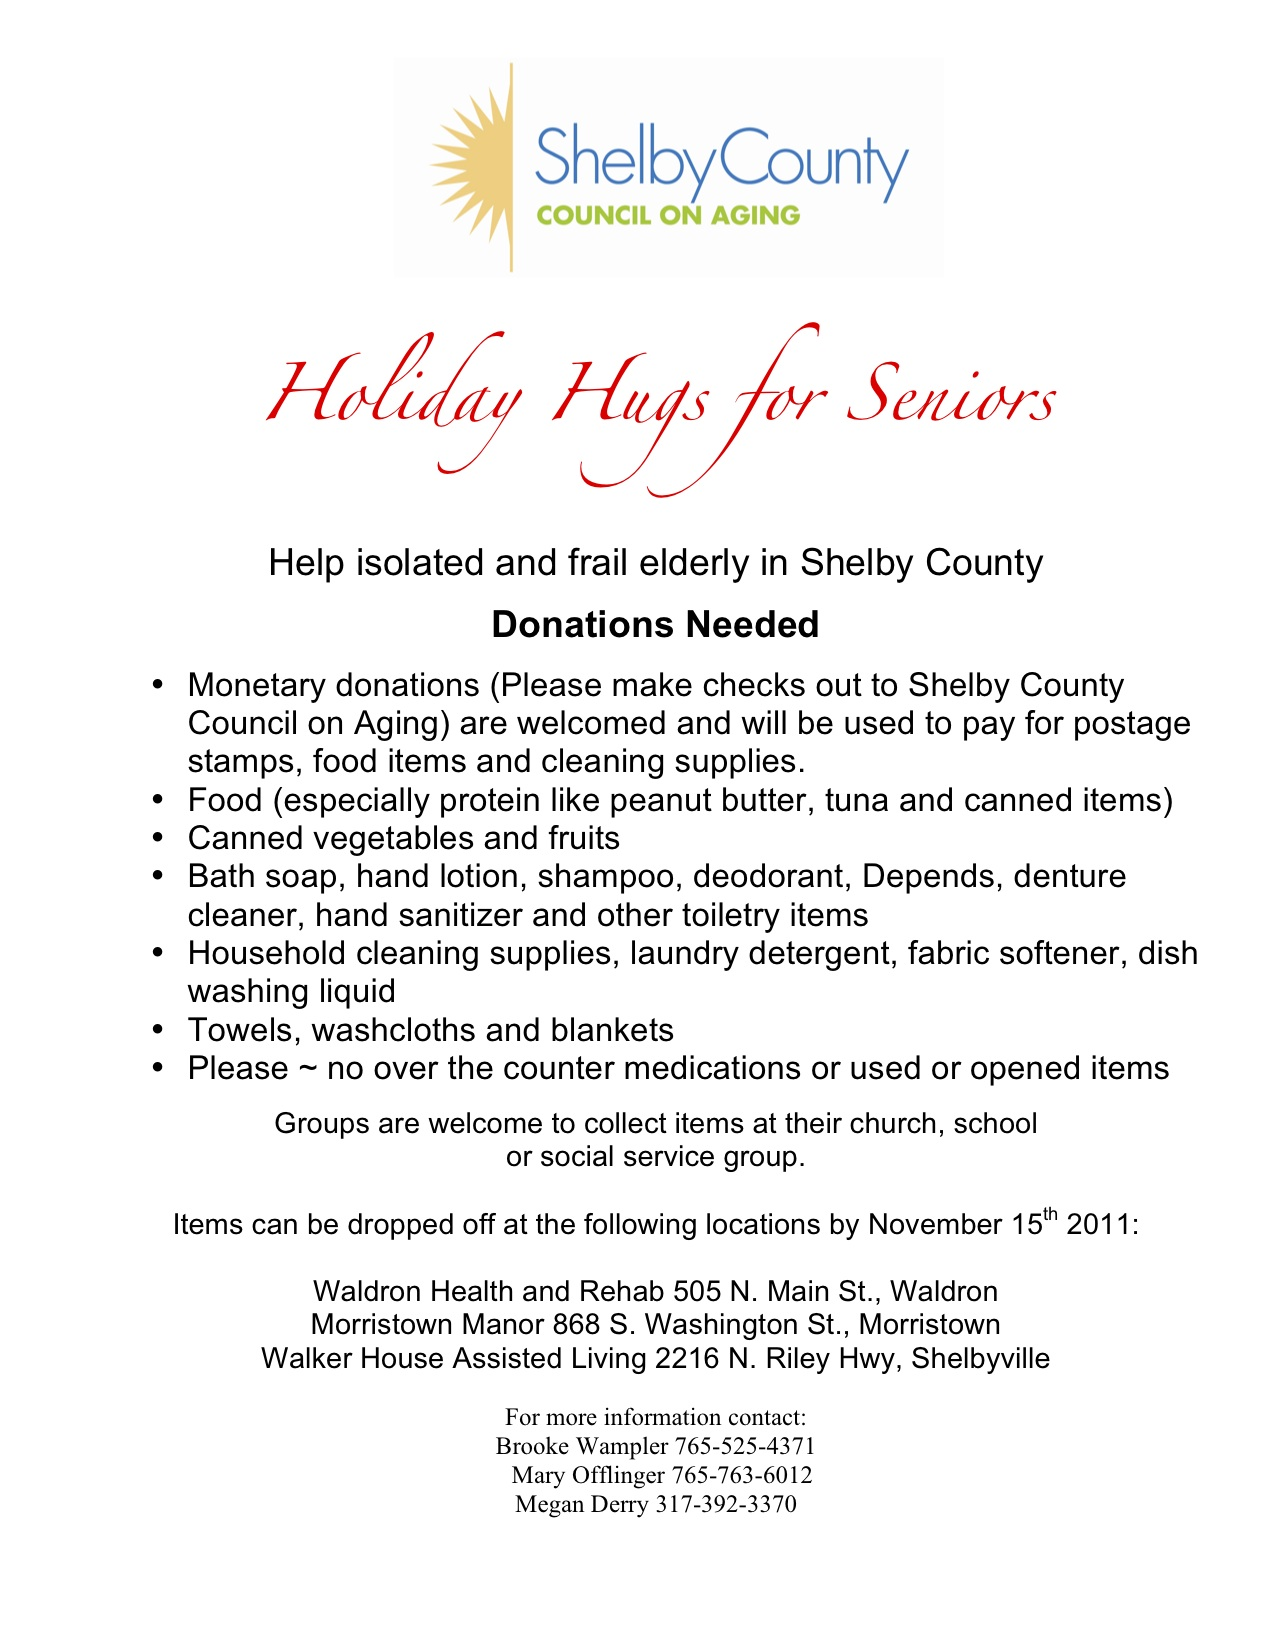 Holiday Hugs for Seniors Flier 2012